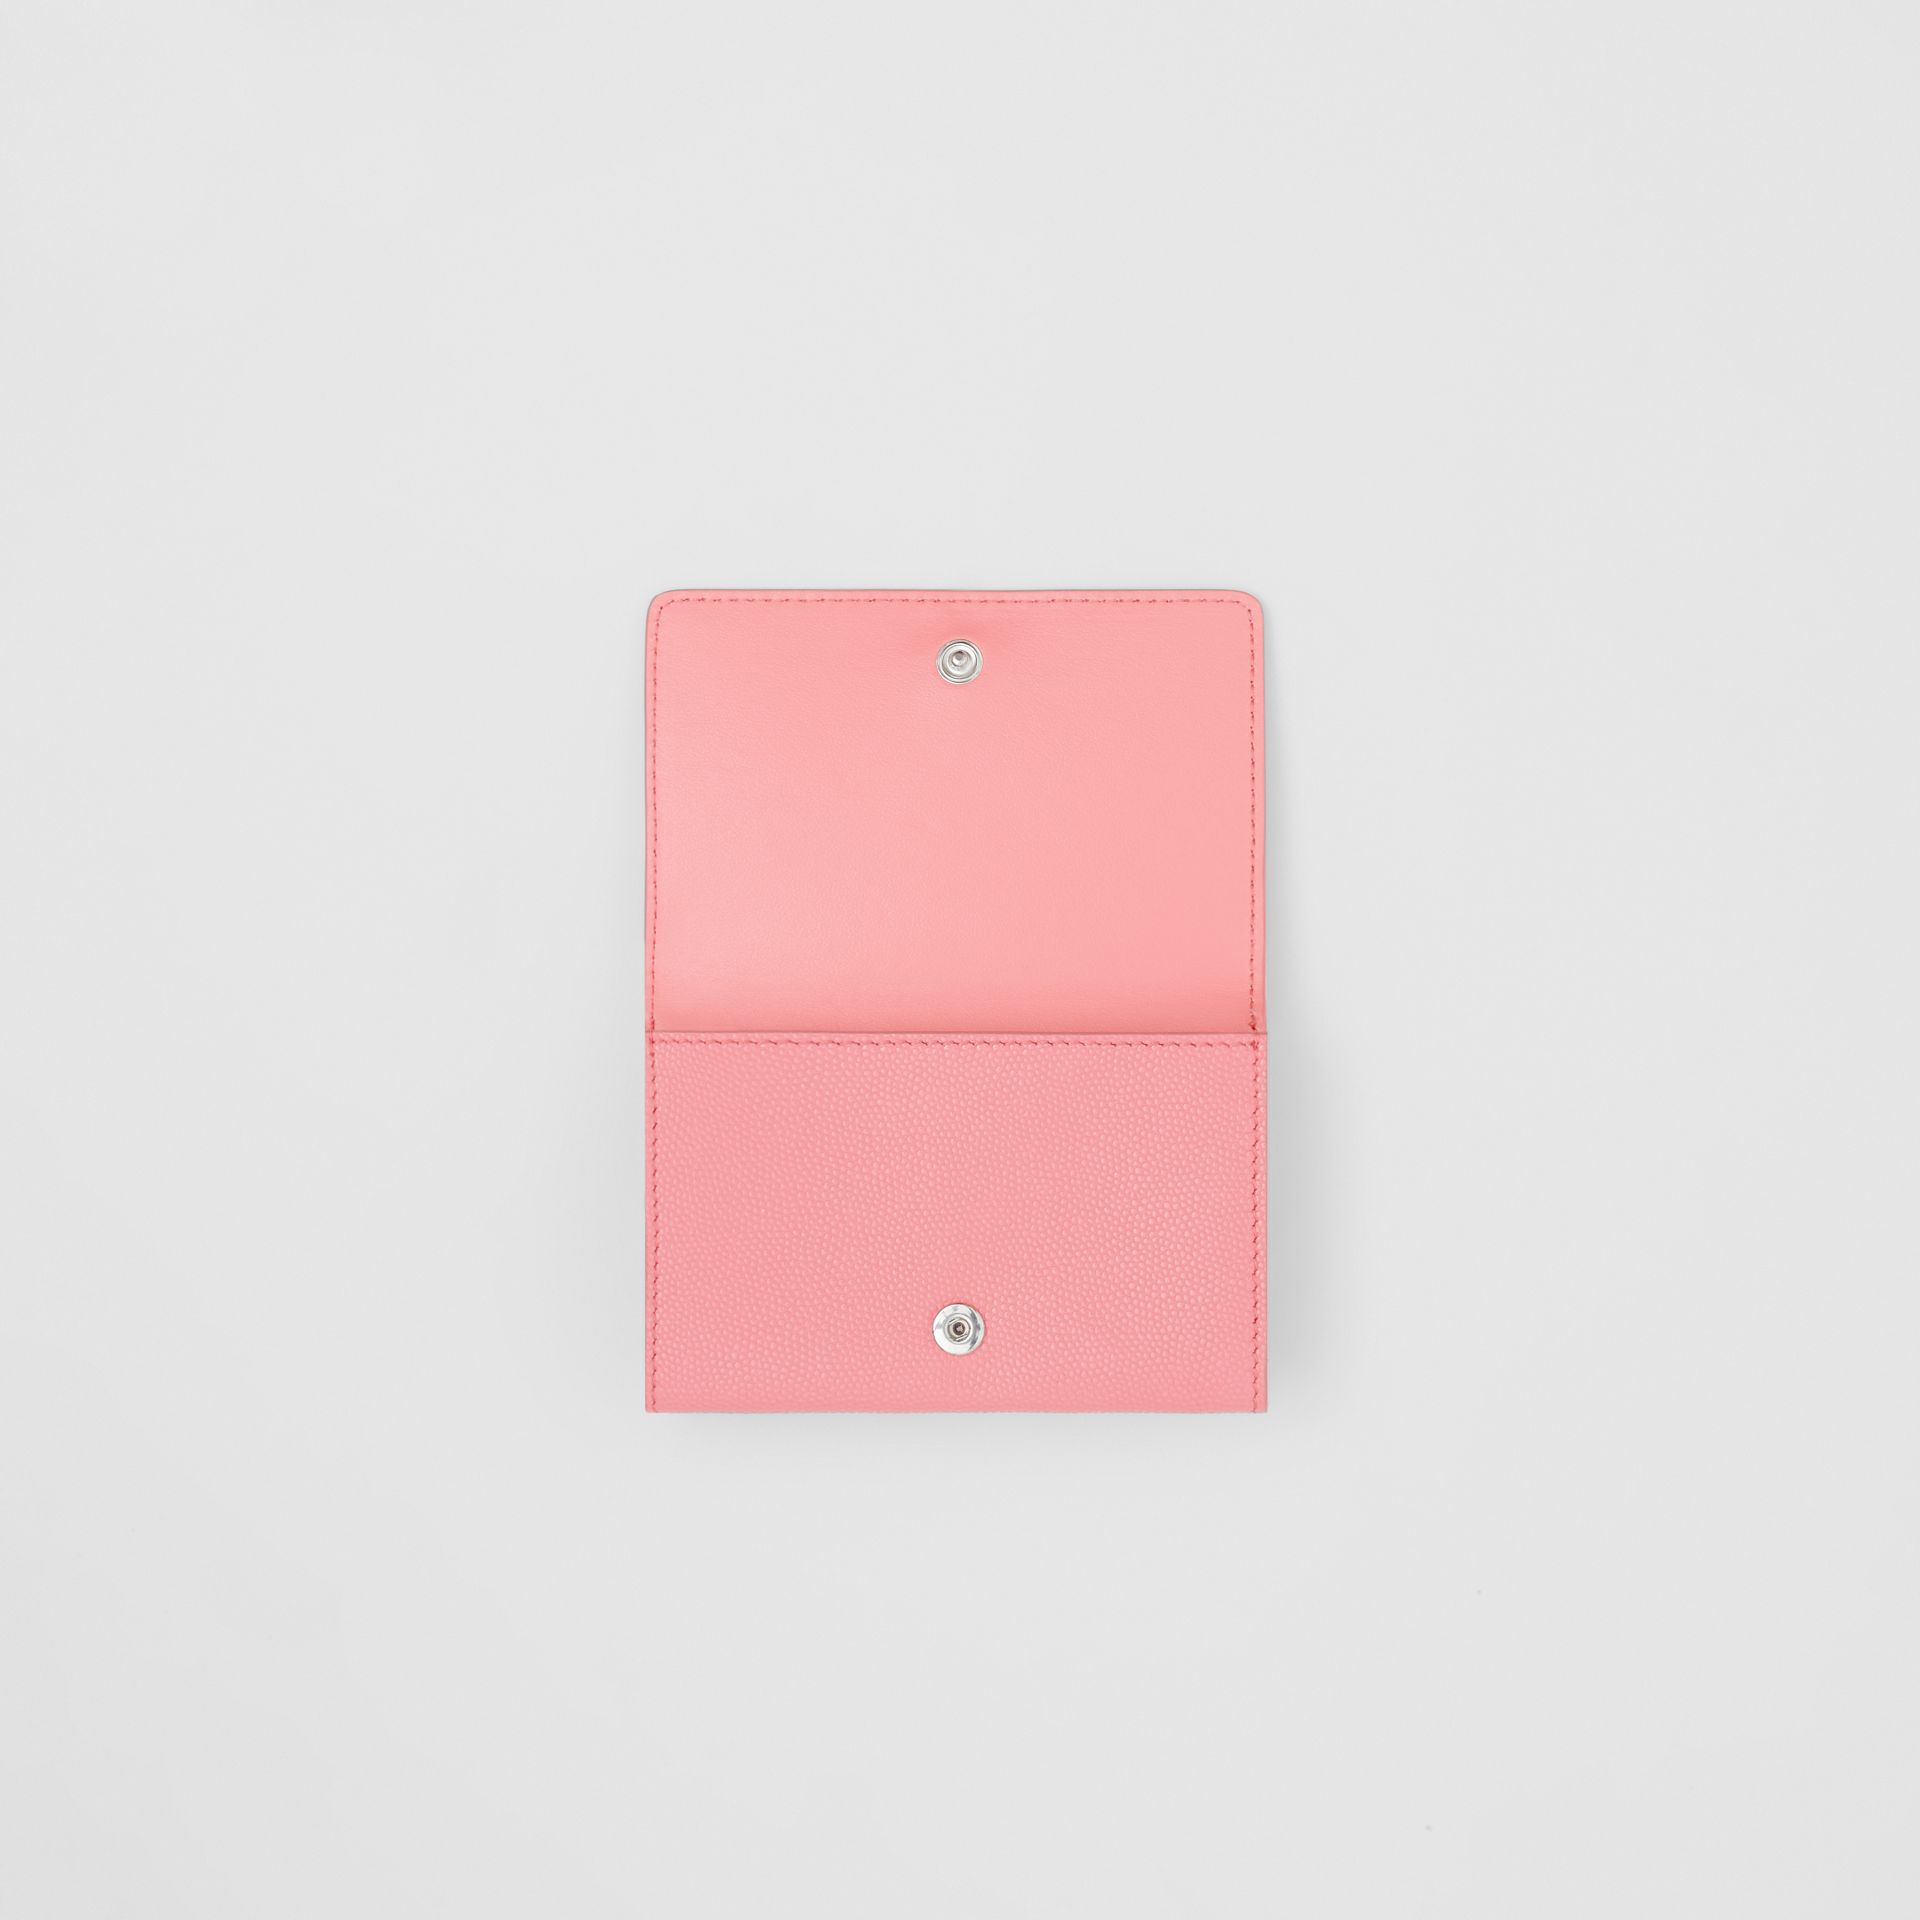 Small Grainy Leather Folding Wallet in Candy Floss/palladio - Women | Burberry - gallery image 5